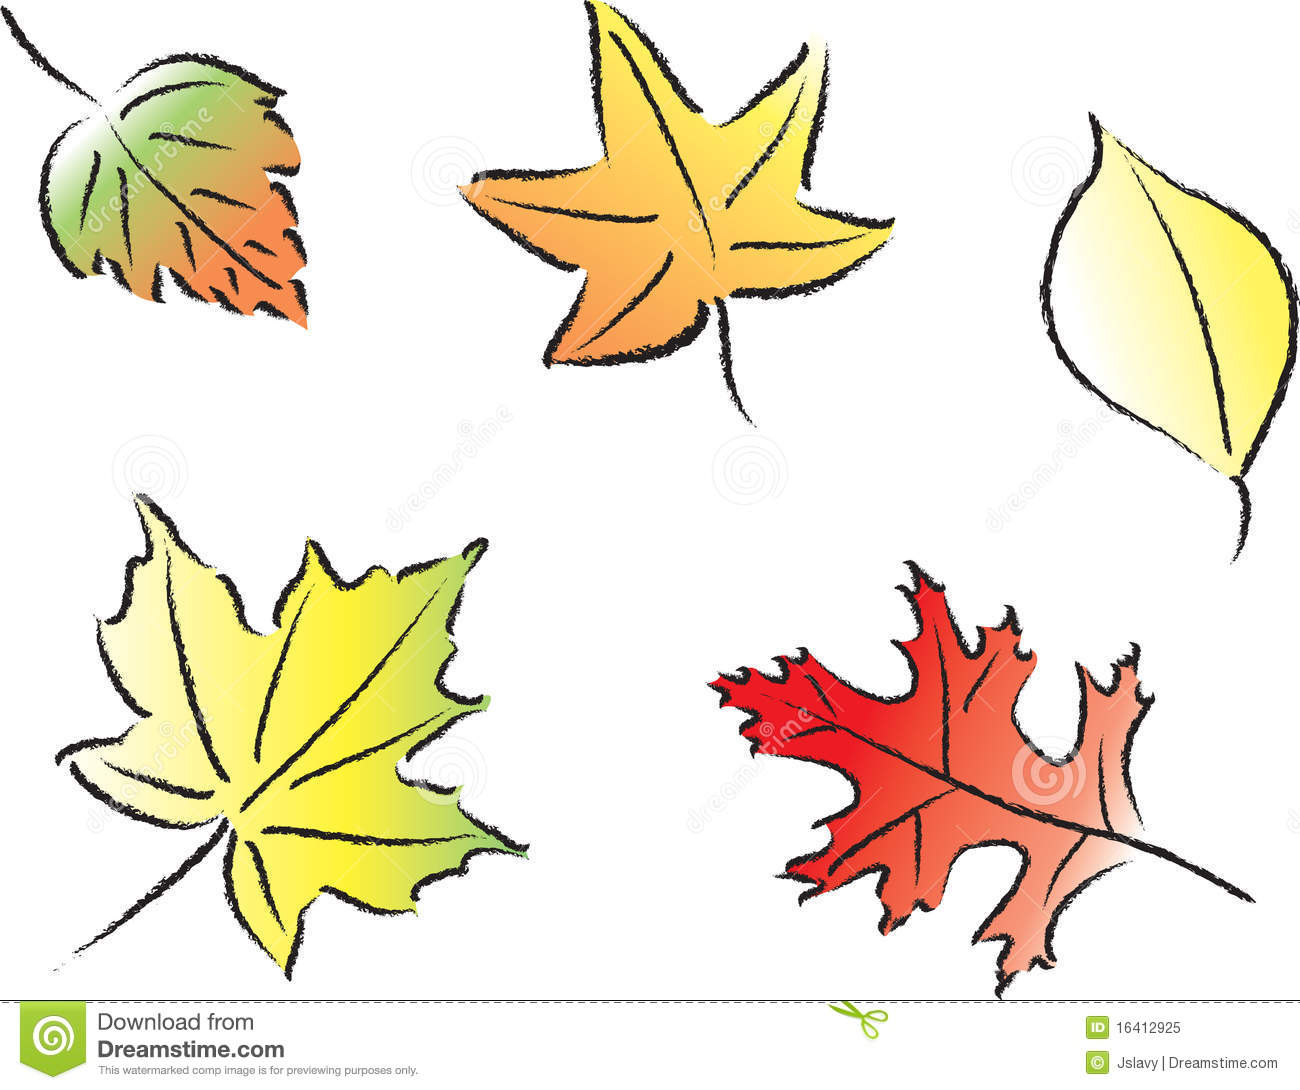 Animated Falling Leaves Wallpaper Assorted Fall Leaves Royalty Free Stock Photo Image